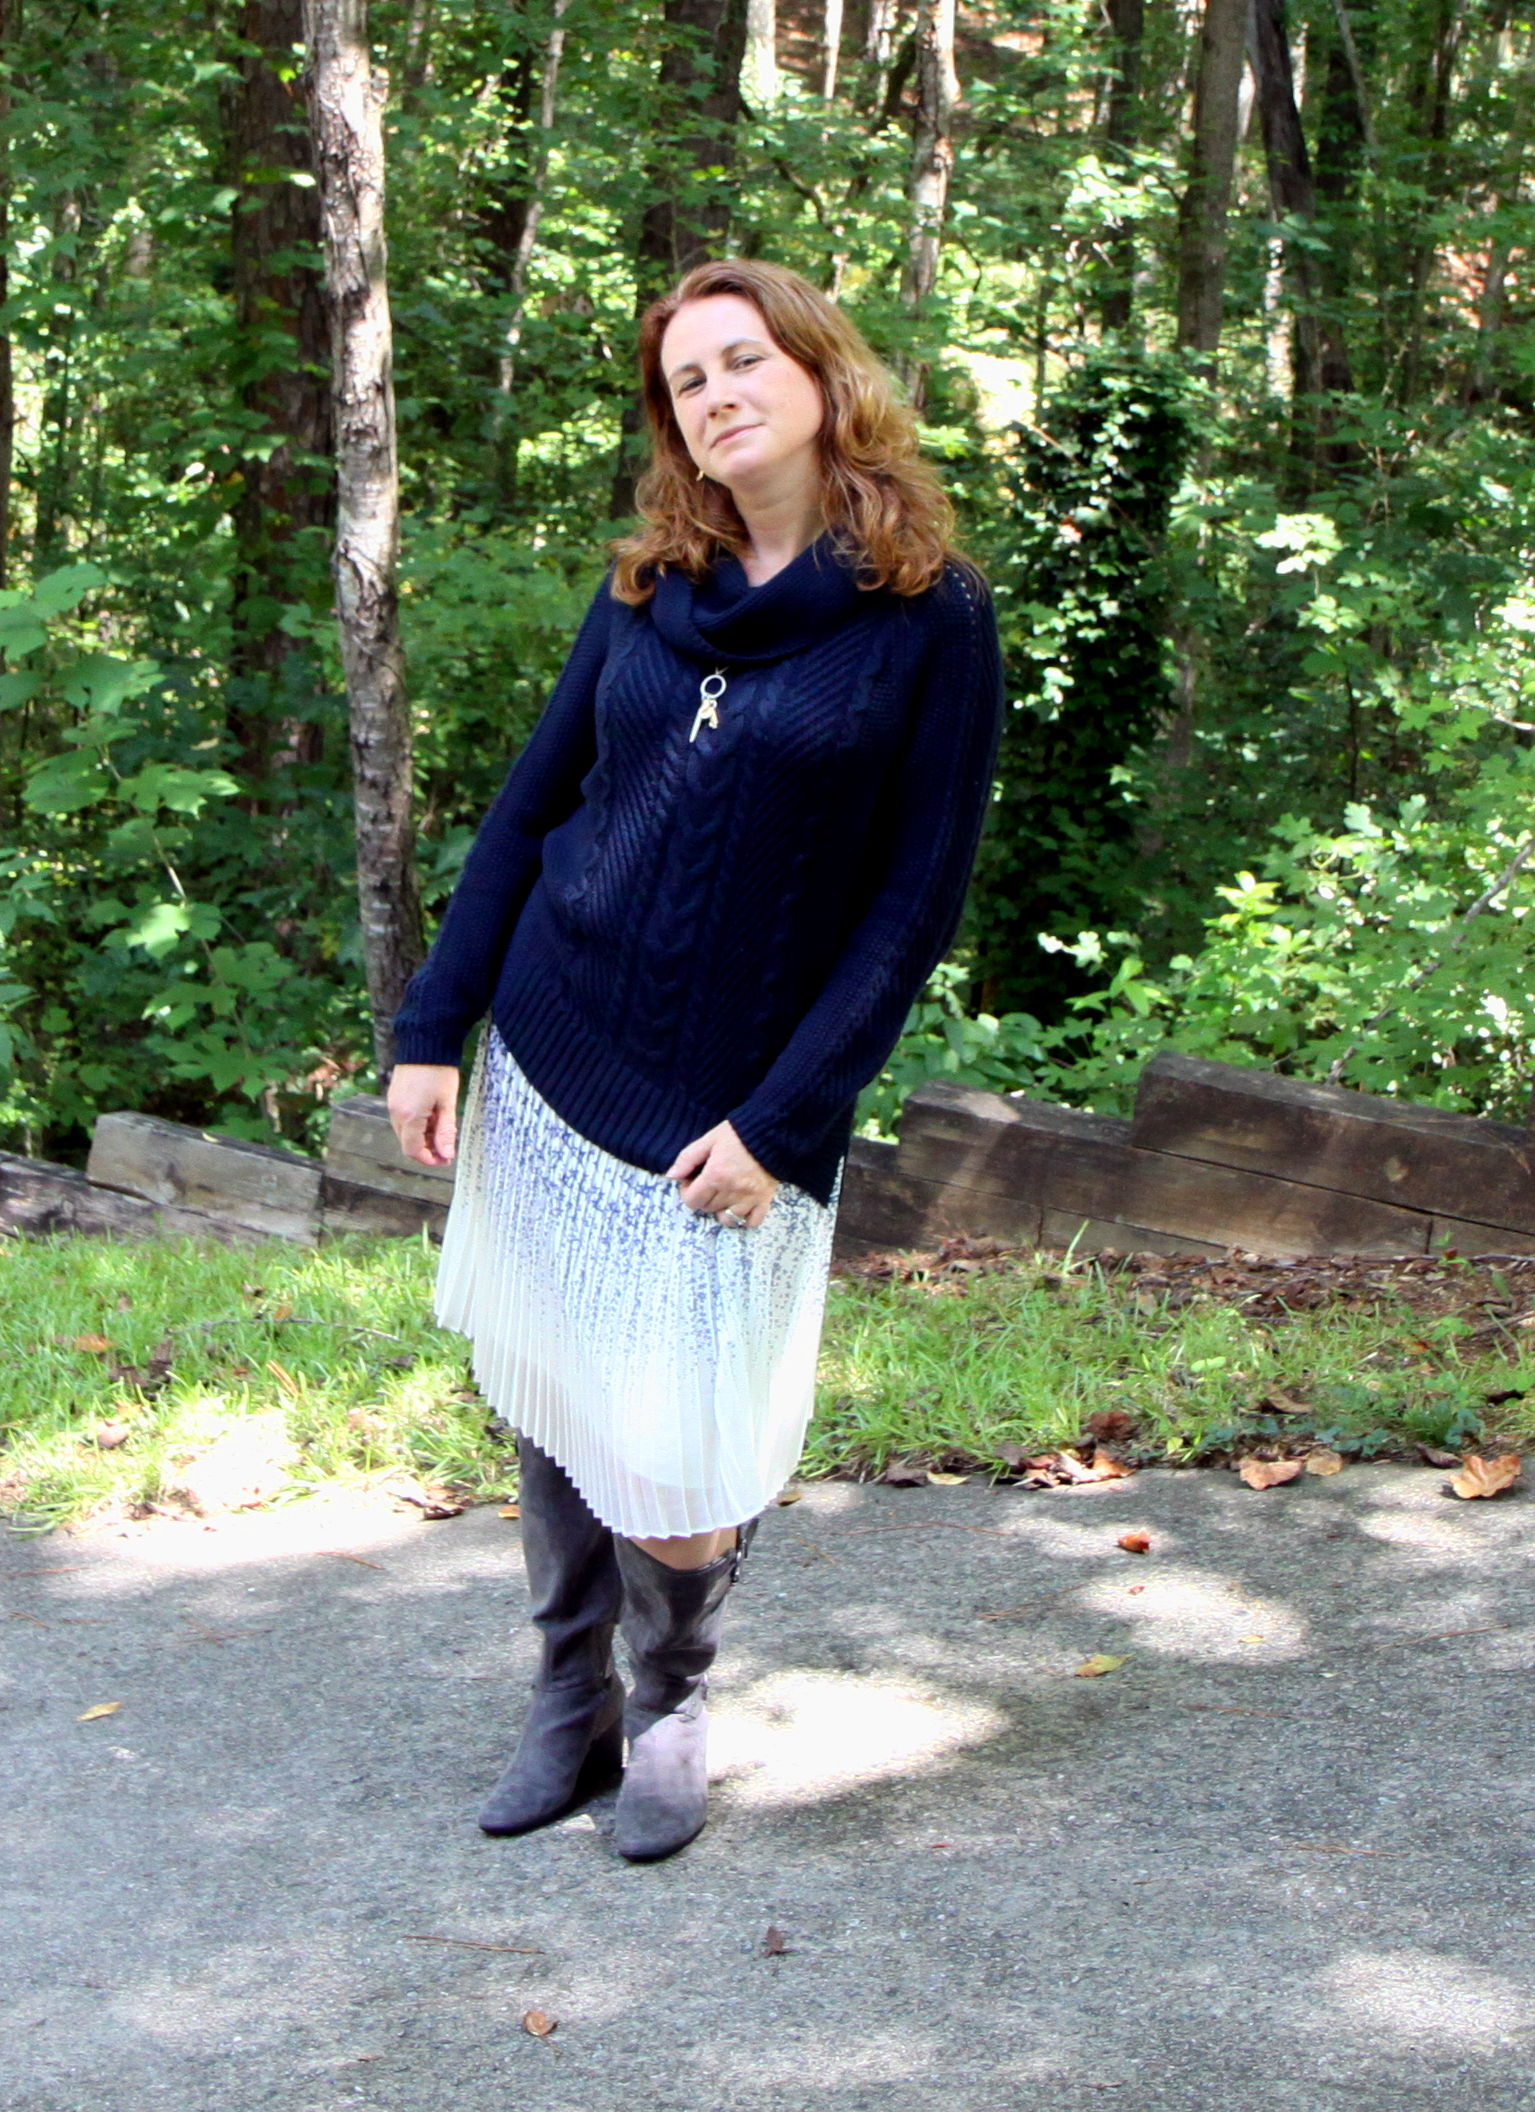 Pleated Star Skirt  from Canvas by Lands' End paired with the cabi Fall 2016  Cable Cowl  sweater and  Chelsea Charm Necklace . Boots are  Wonderful  by Aerosoles.